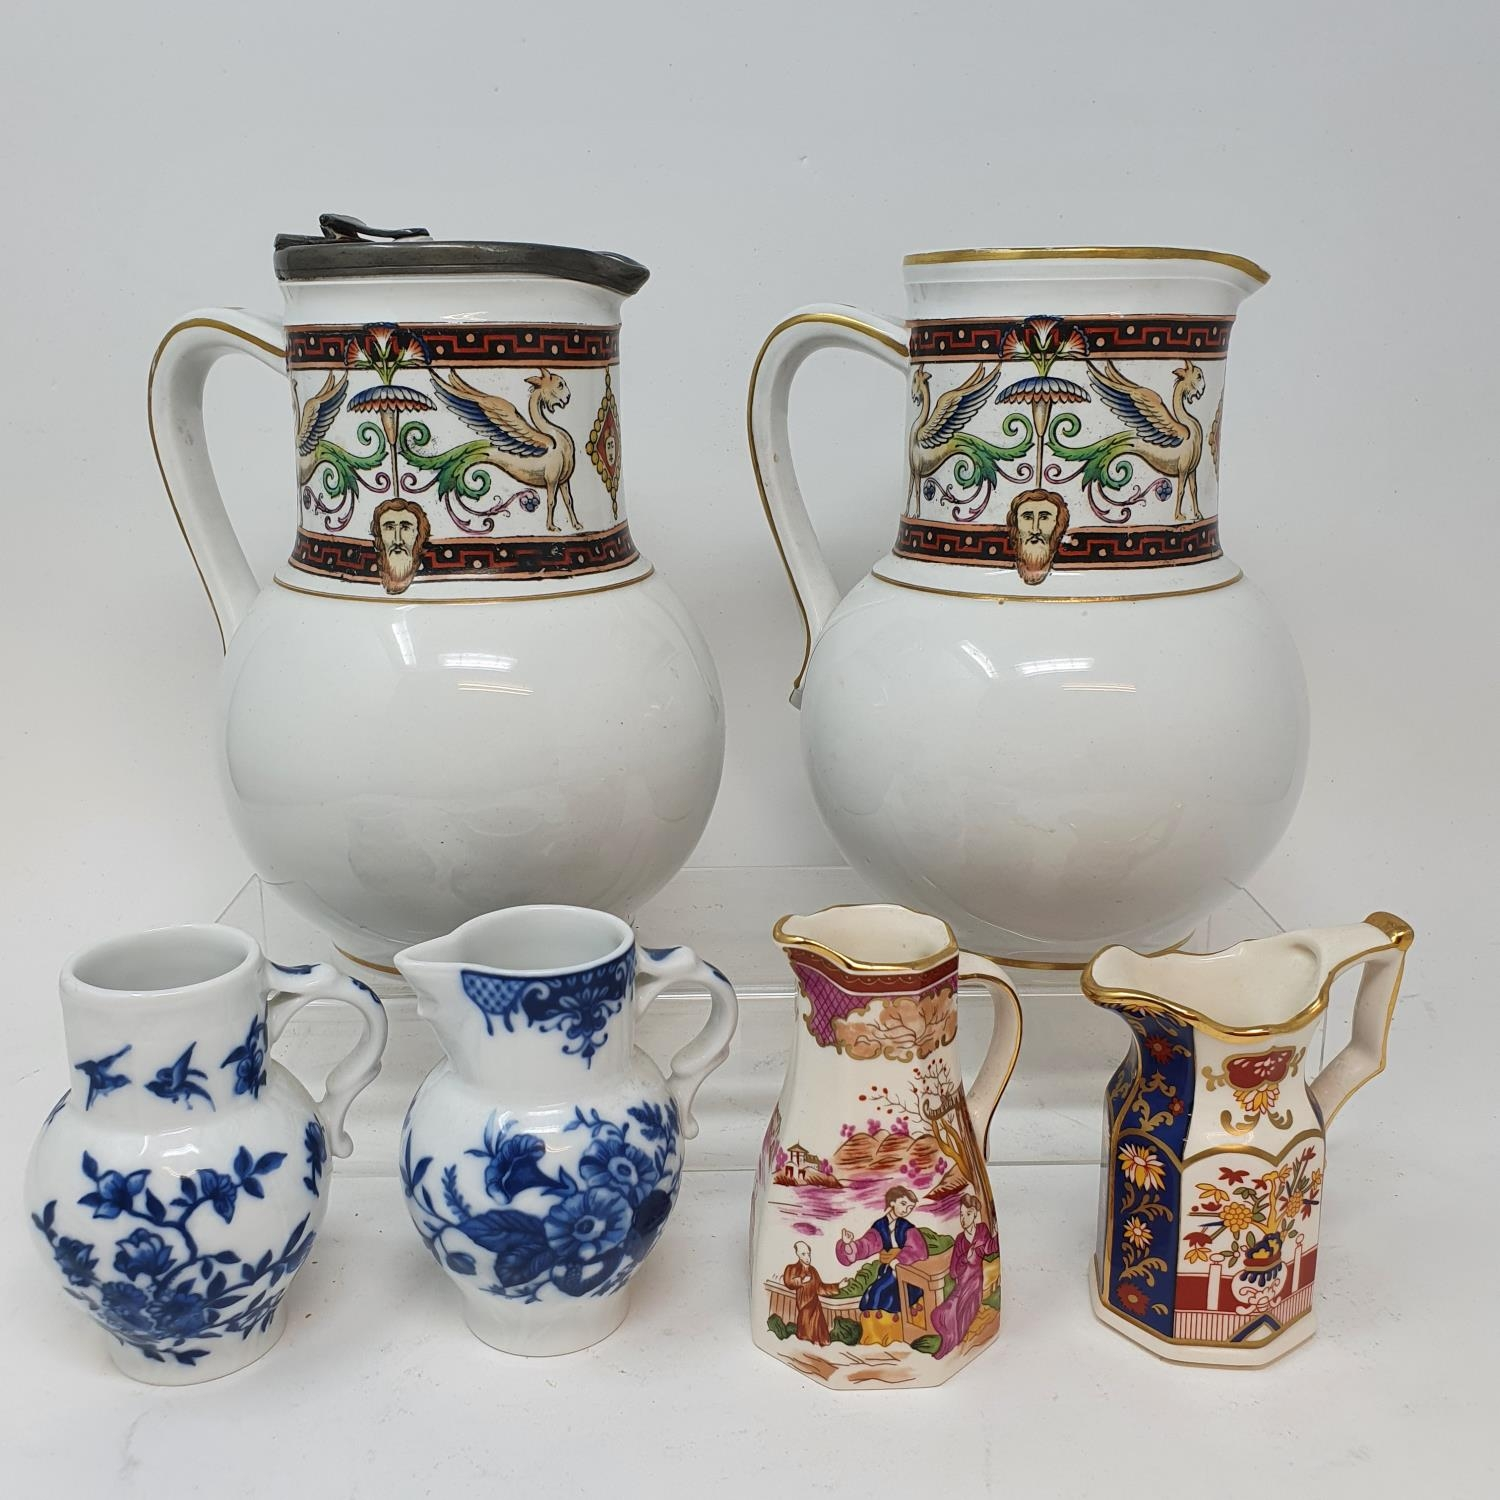 A pair of jugs, decorated phoenix, other ceramics and glass (4 boxes)